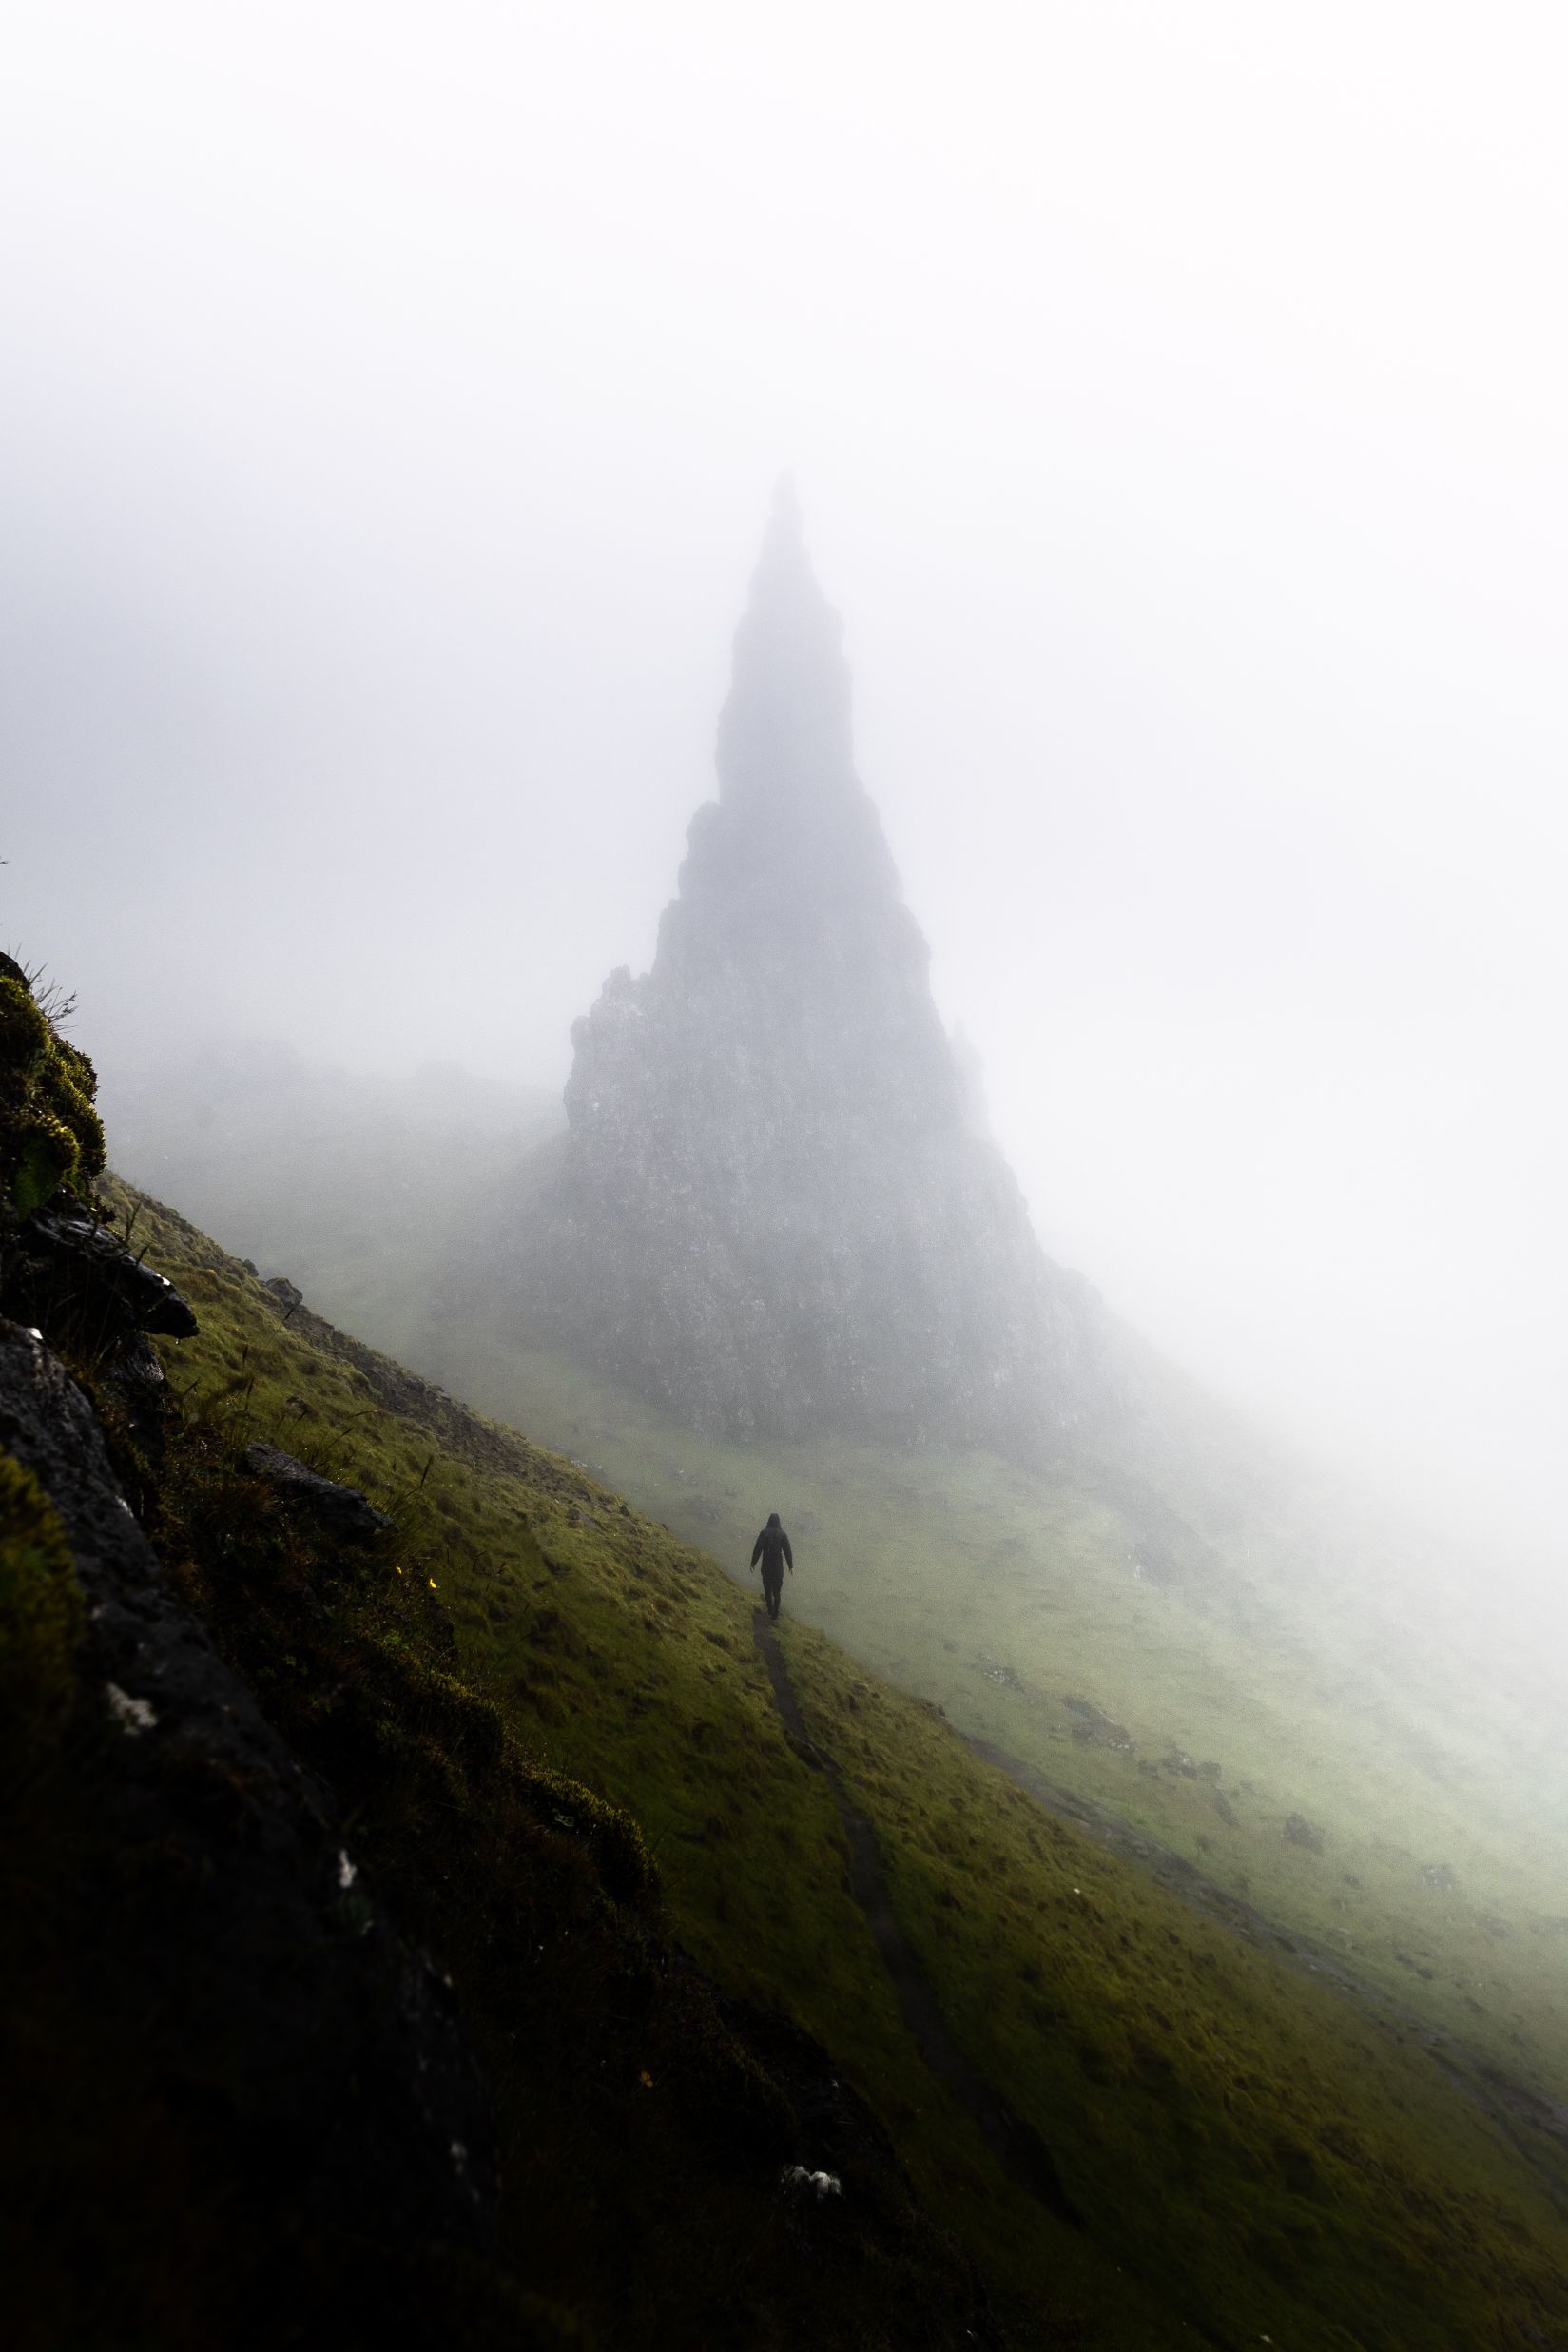 A figure walking in the mist towards rocky peak.